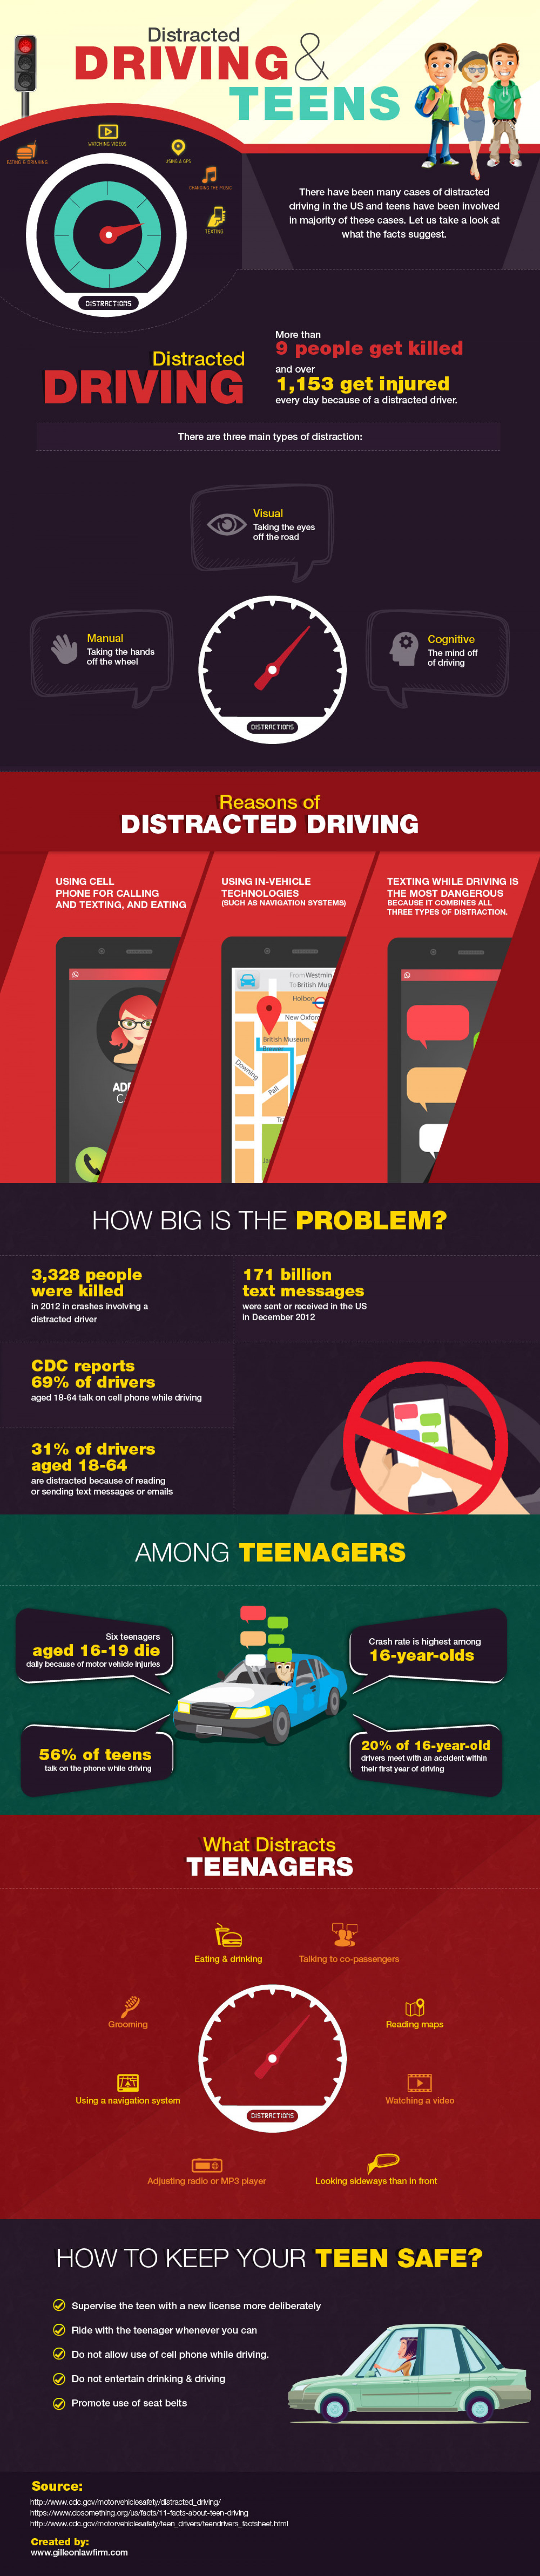 Distracted Driving and Teens Infographic